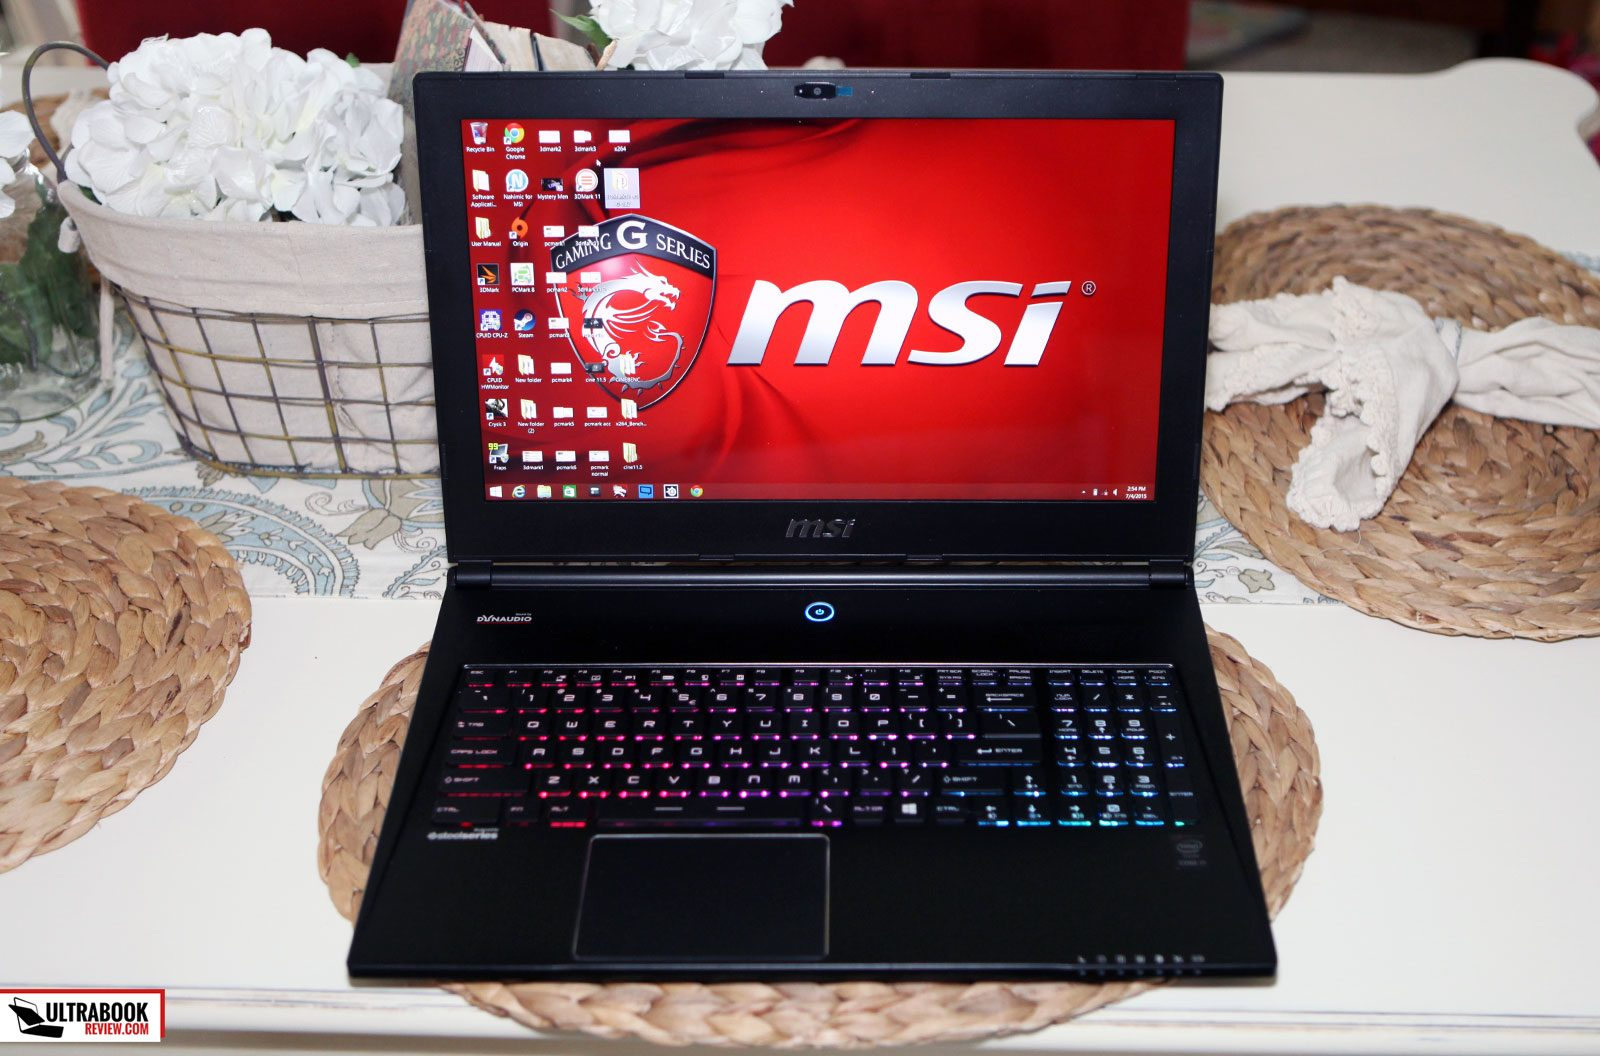 The MSI GS60 2015 is still on of the best gaming ultraportables out there. Just stay away from the 4K screen!